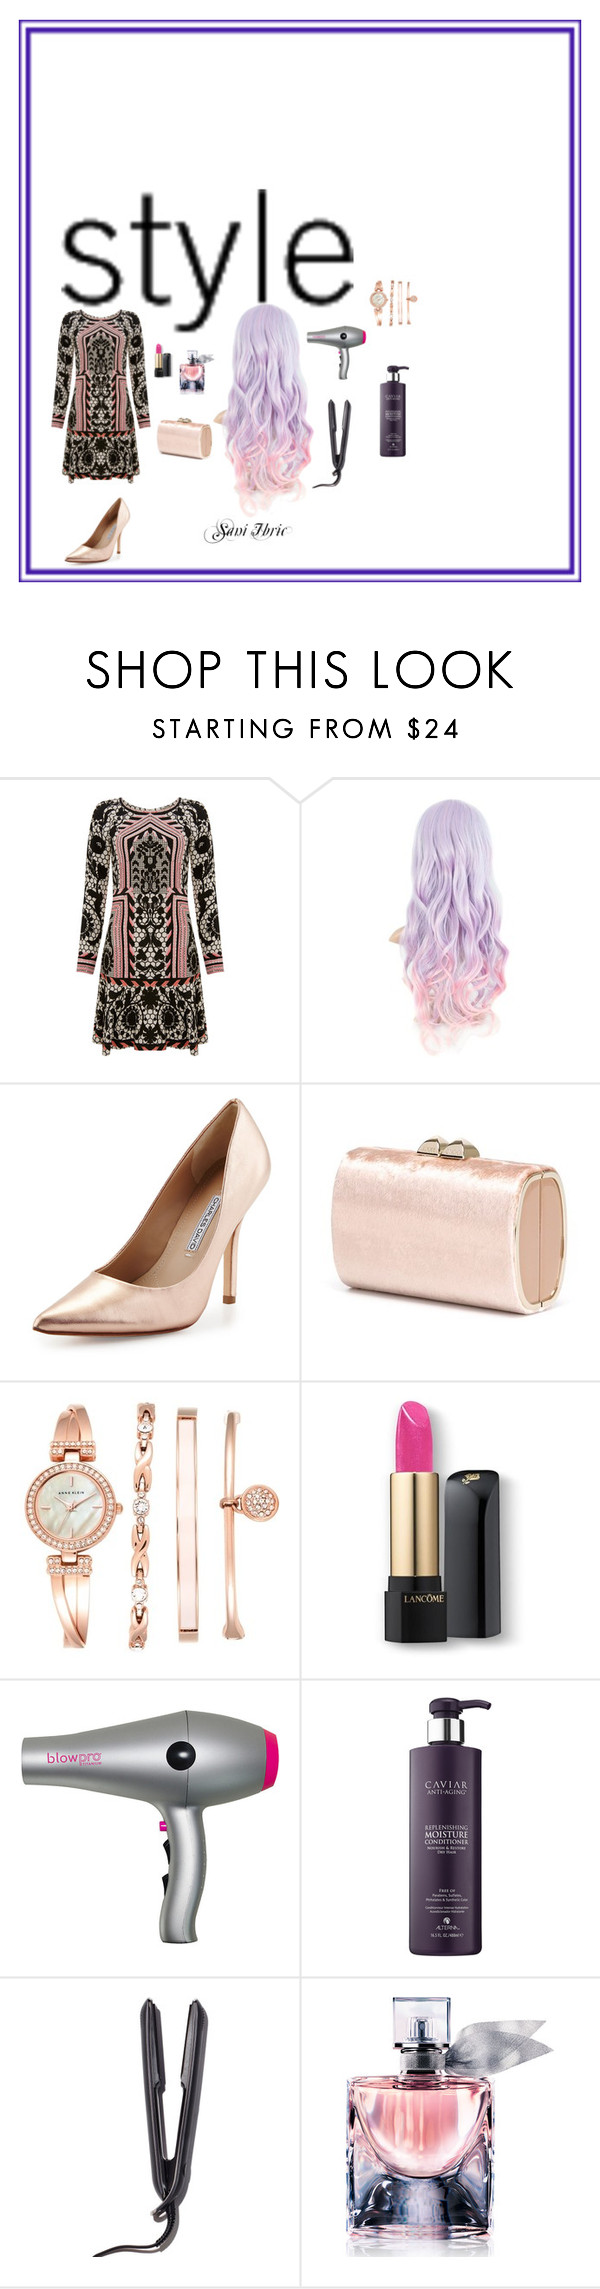 """""""Style"""" by saniibric ❤ liked on Polyvore featuring Temperley London, Charles David, Jimmy Choo, Anne Klein, Lancôme, blow, GHD, women's clothing, women and female"""